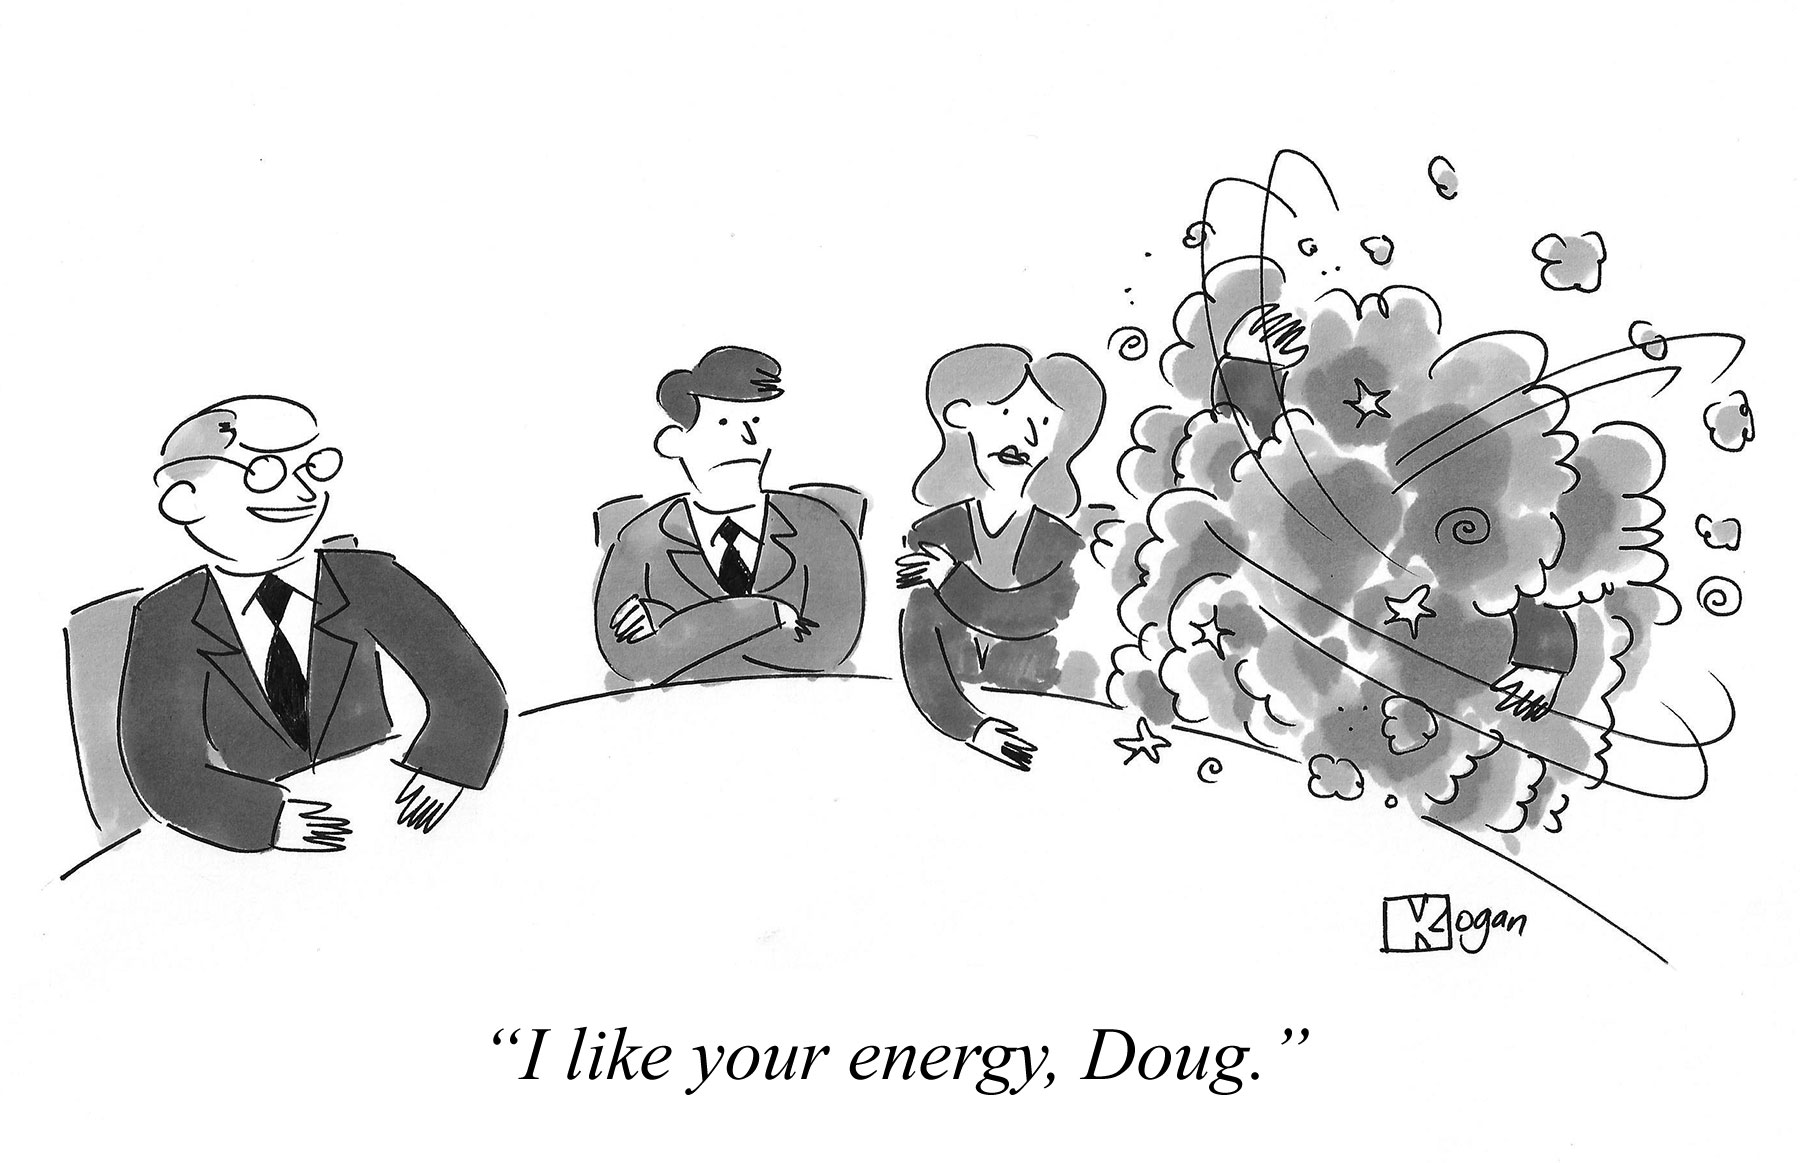 Cartoon about a high-energy employee